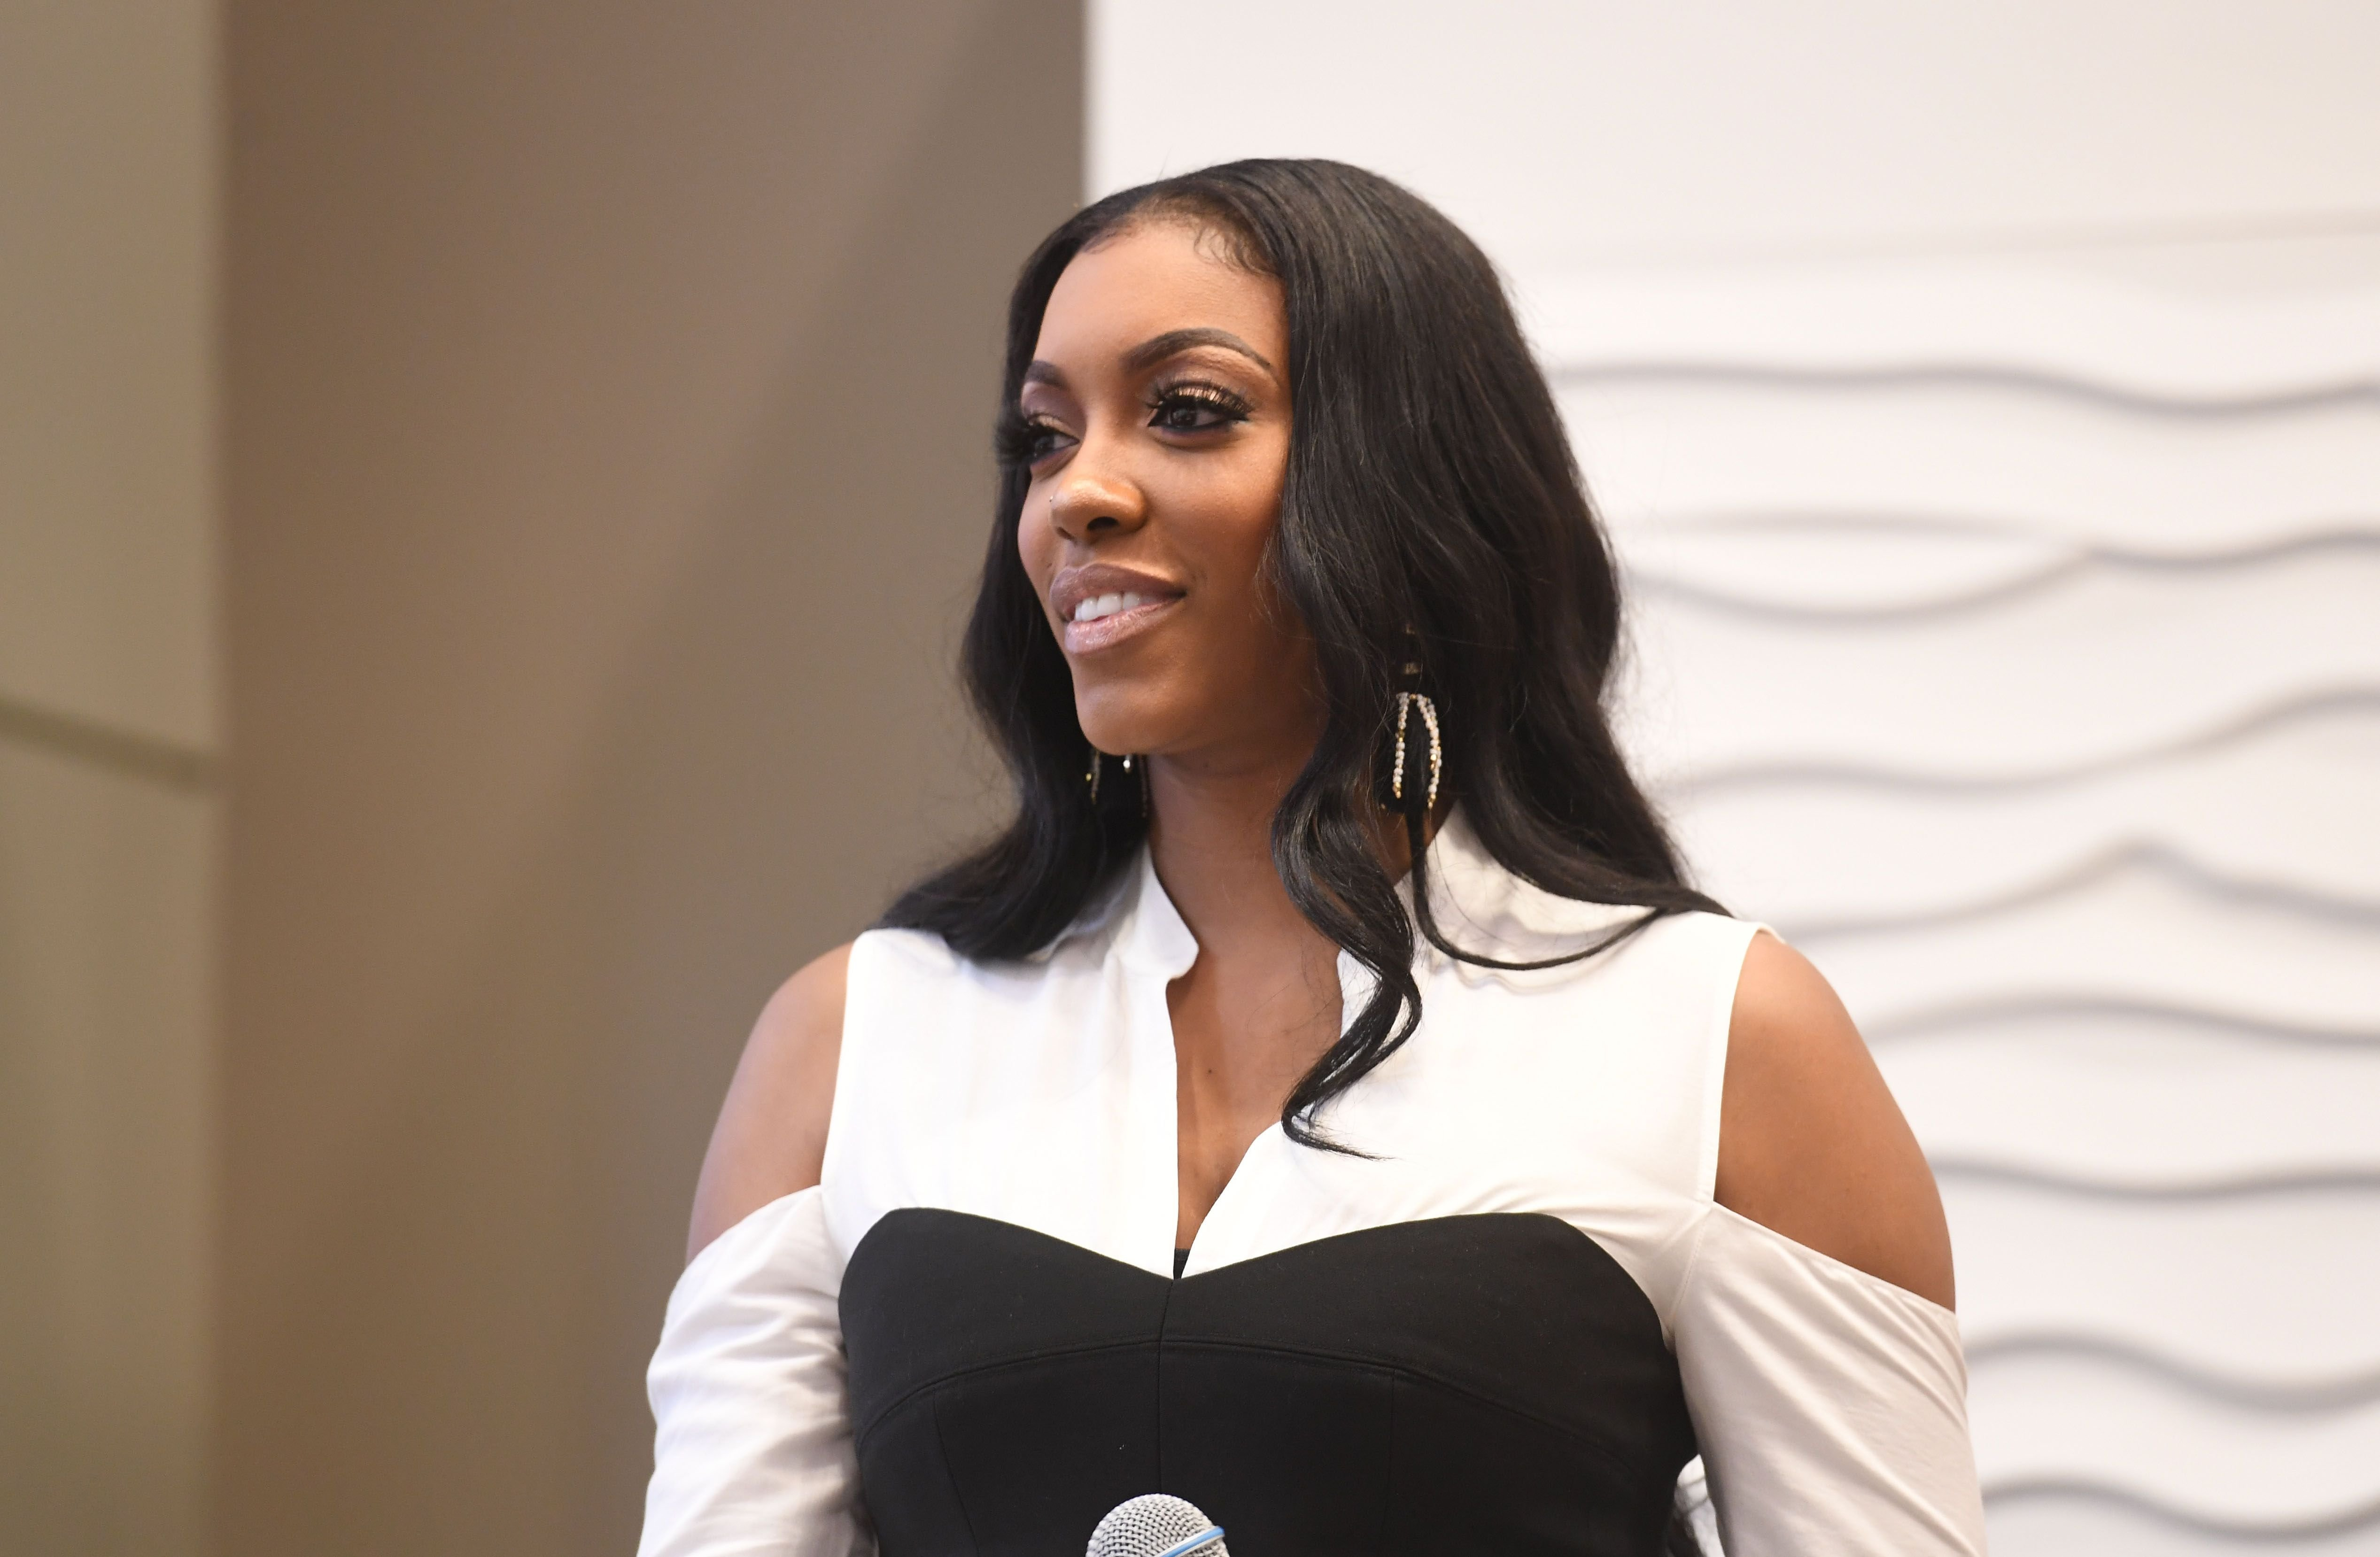 Porsha Williams spoke at 2018 Hosea's Heroes Awards at Loudermilk Conference Center on February 25, 2018 | Photo: Getty Images